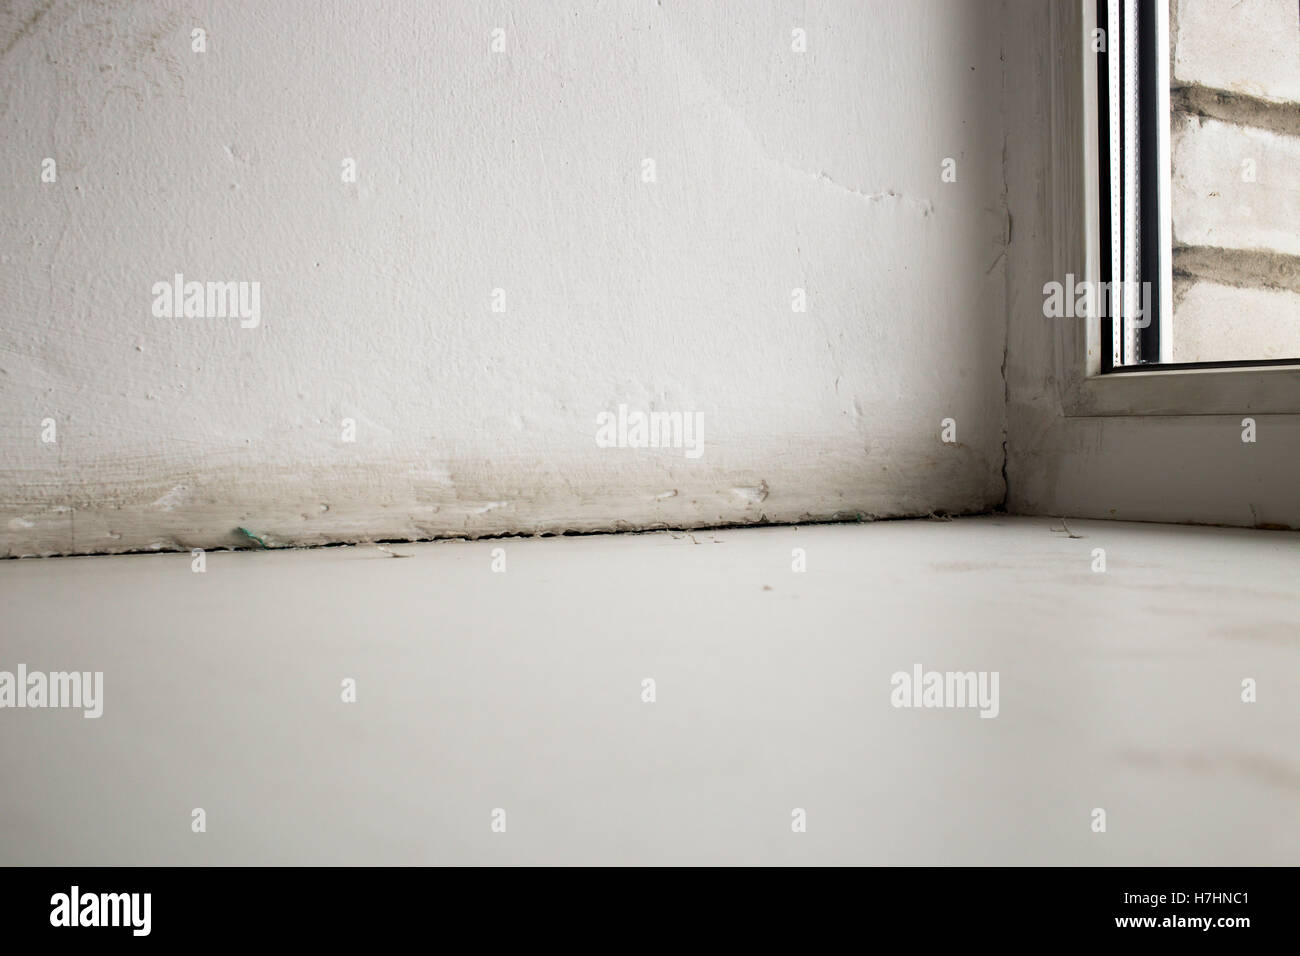 The crack between the sill window and the wall due to the deformation (shrinkage) of the house - Stock Image